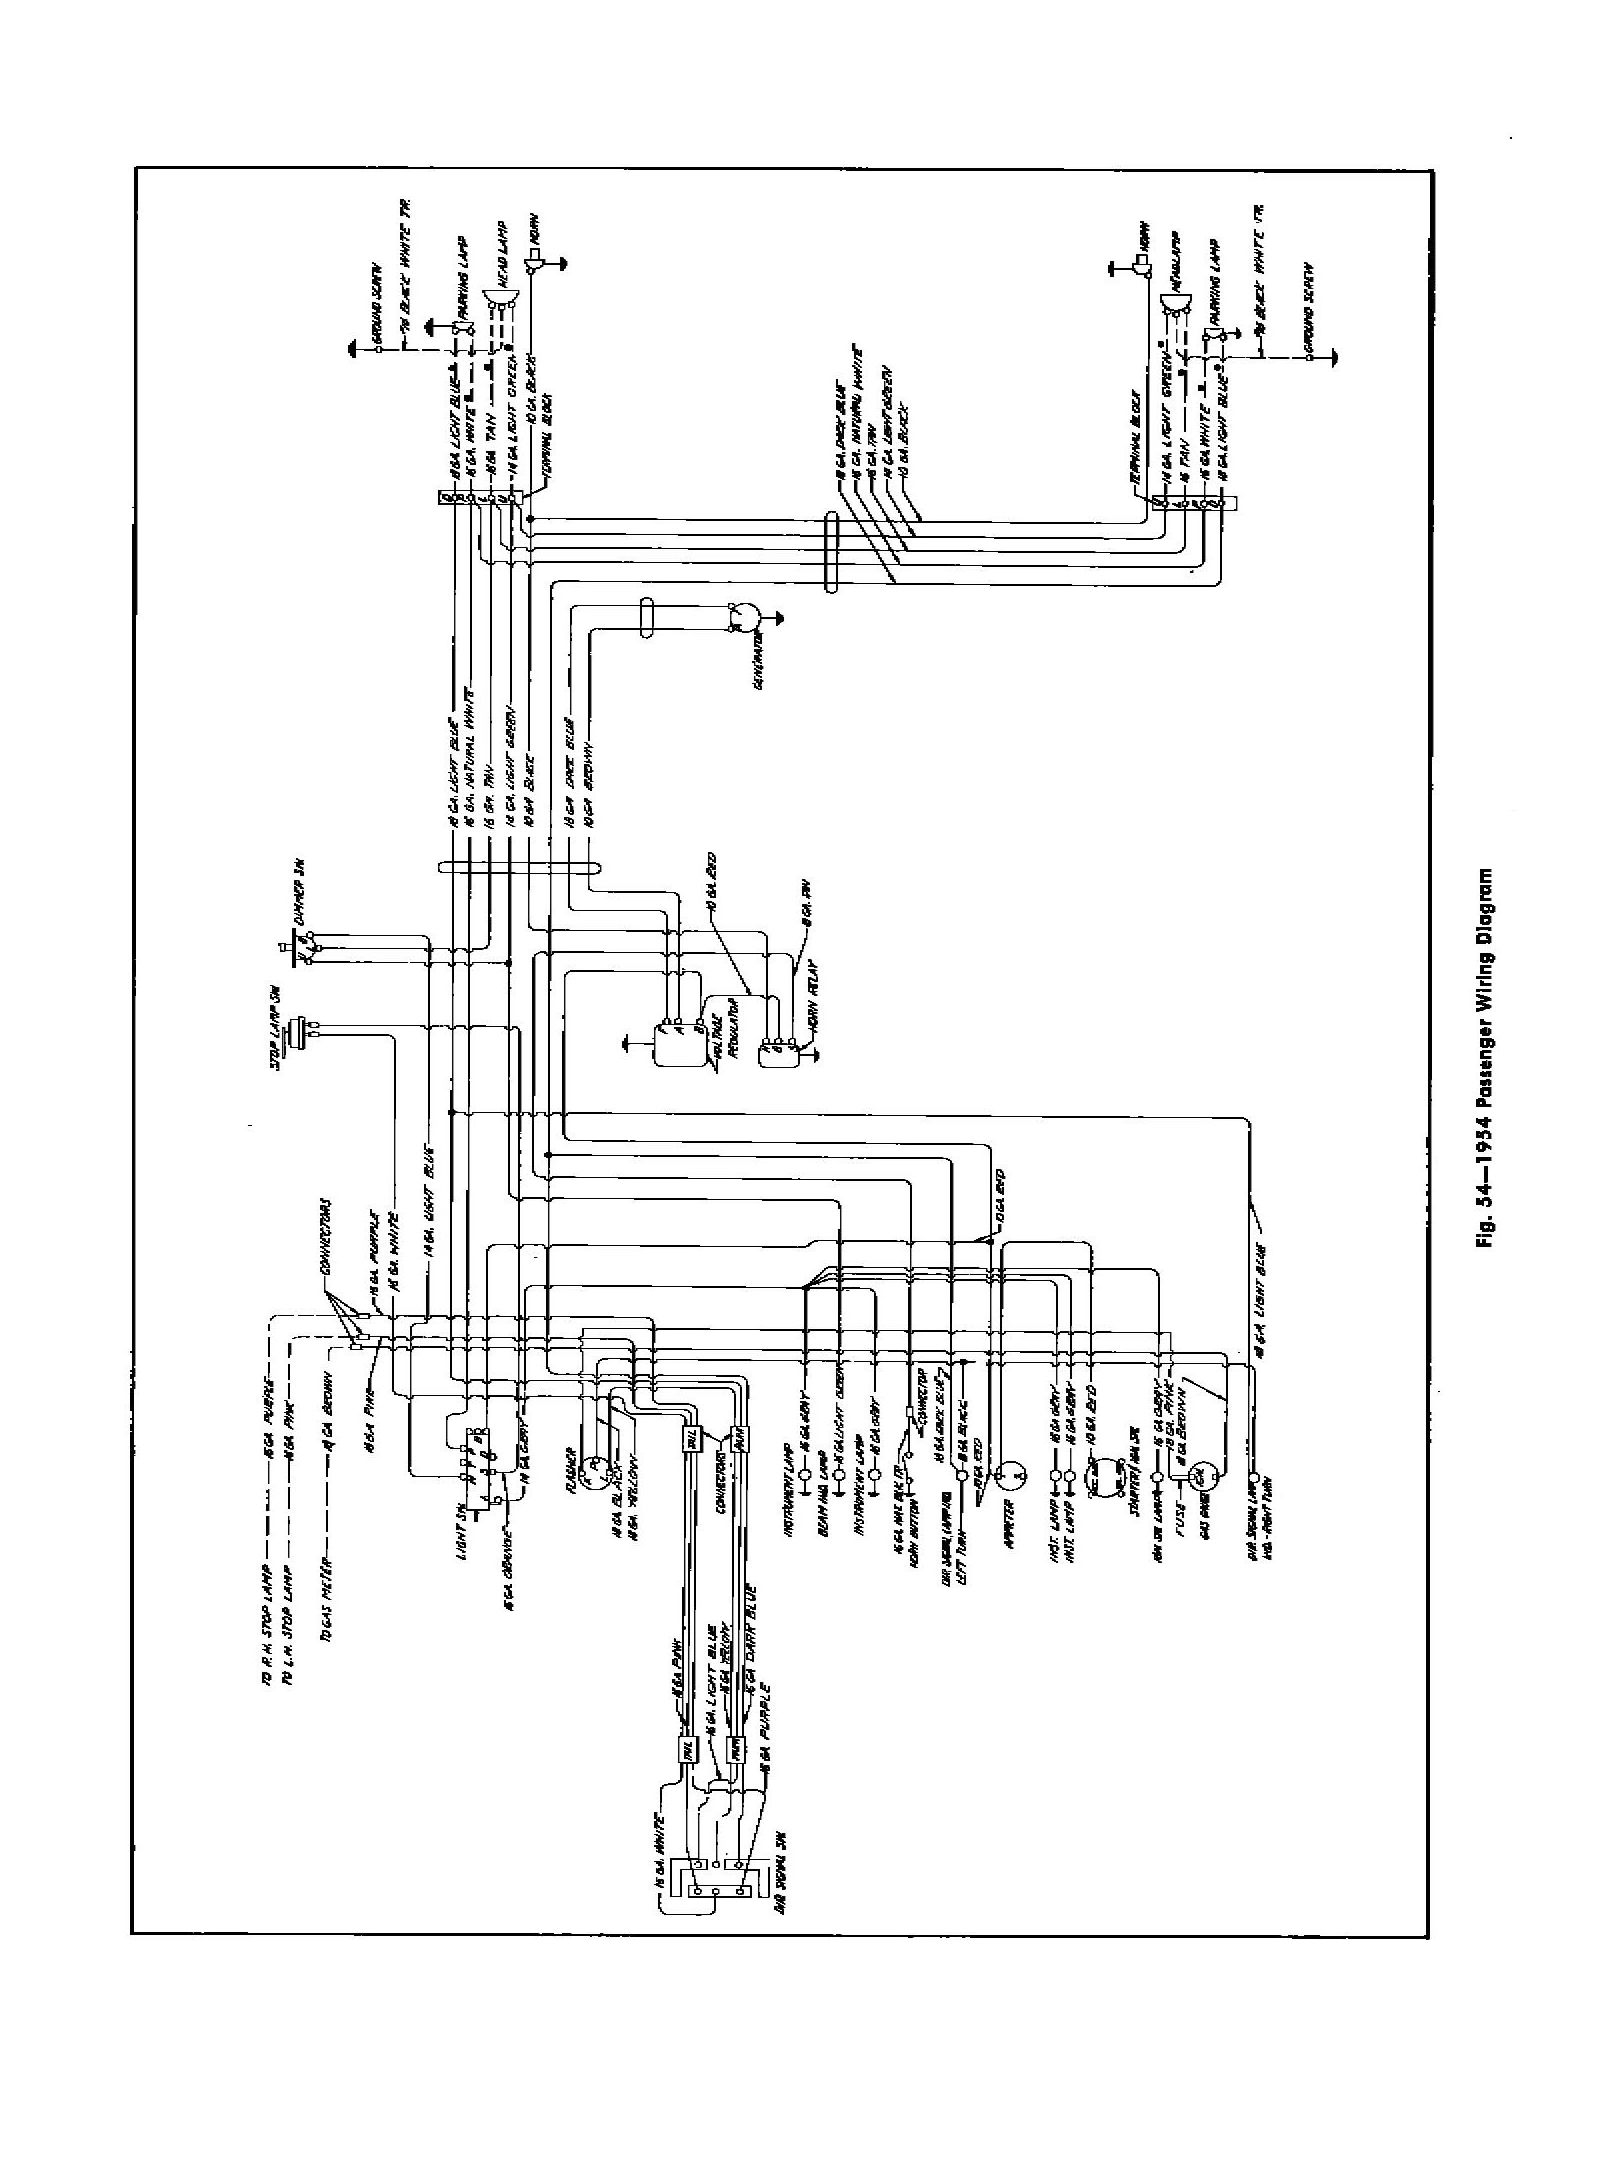 Wiring Manual Pdf  1934 Ford Truck Wiring Diagram